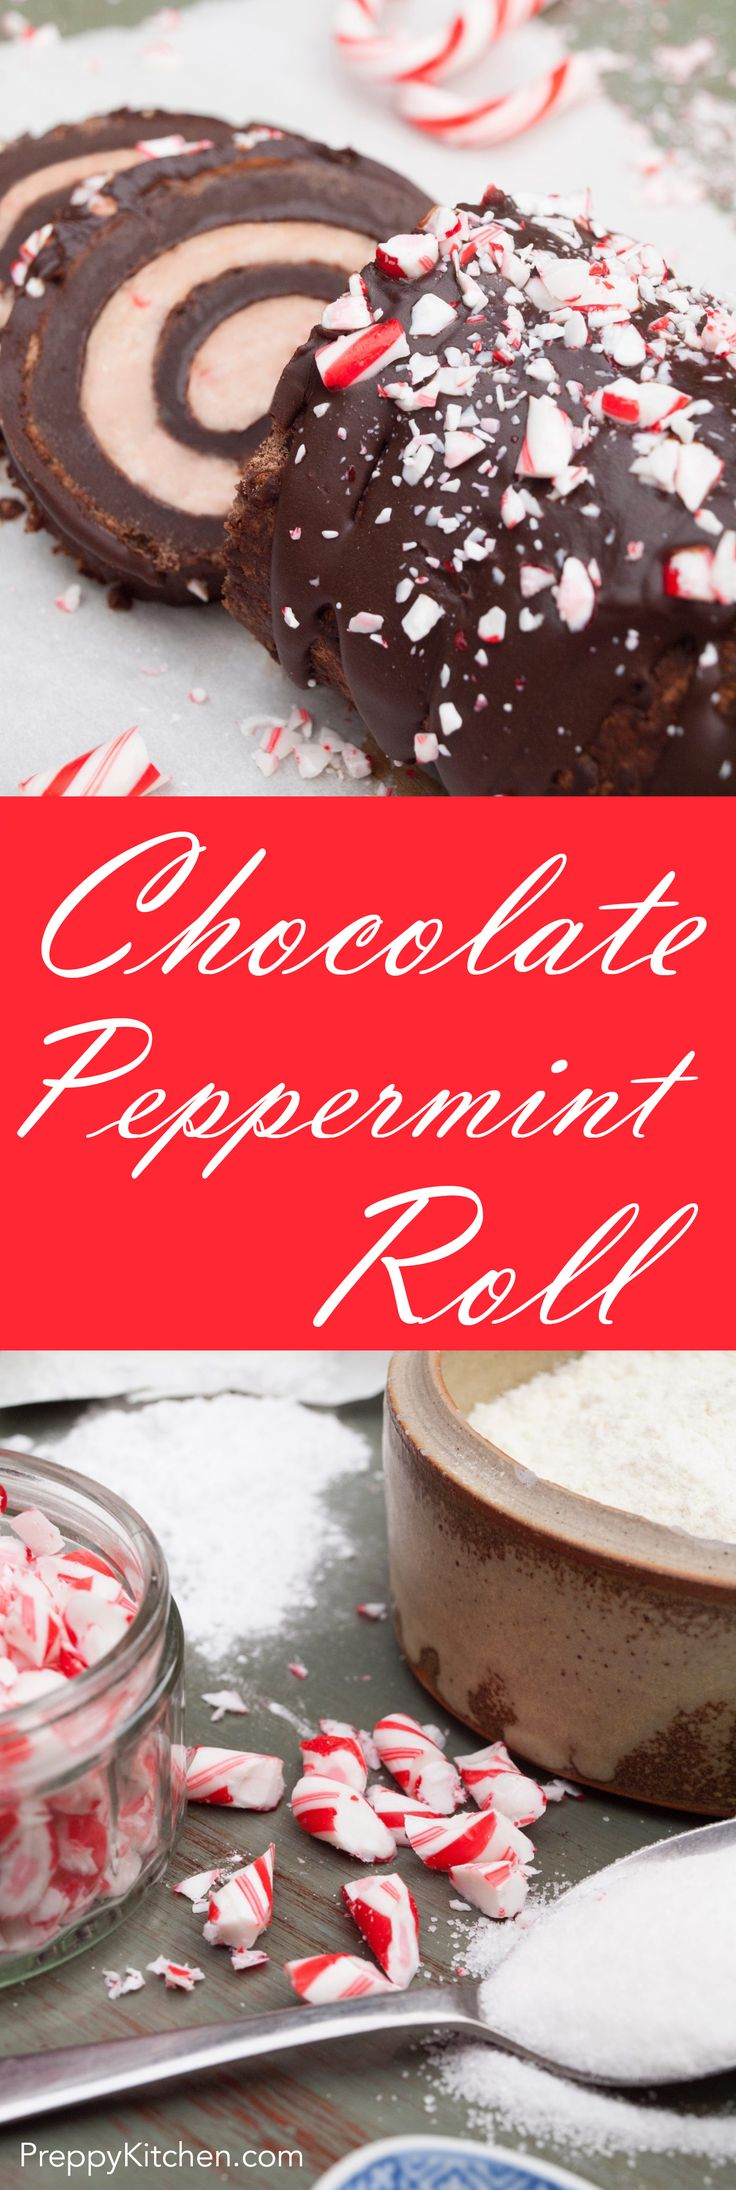 This decadent chocolate roll is surprisingly forgiving to assemble and it looks and tastes fantastic. via @preppykitchen | Holiday Desserts, Christmas recipes, Chocolate recipes, Peppermint recipes, homemade, Easy Desserts